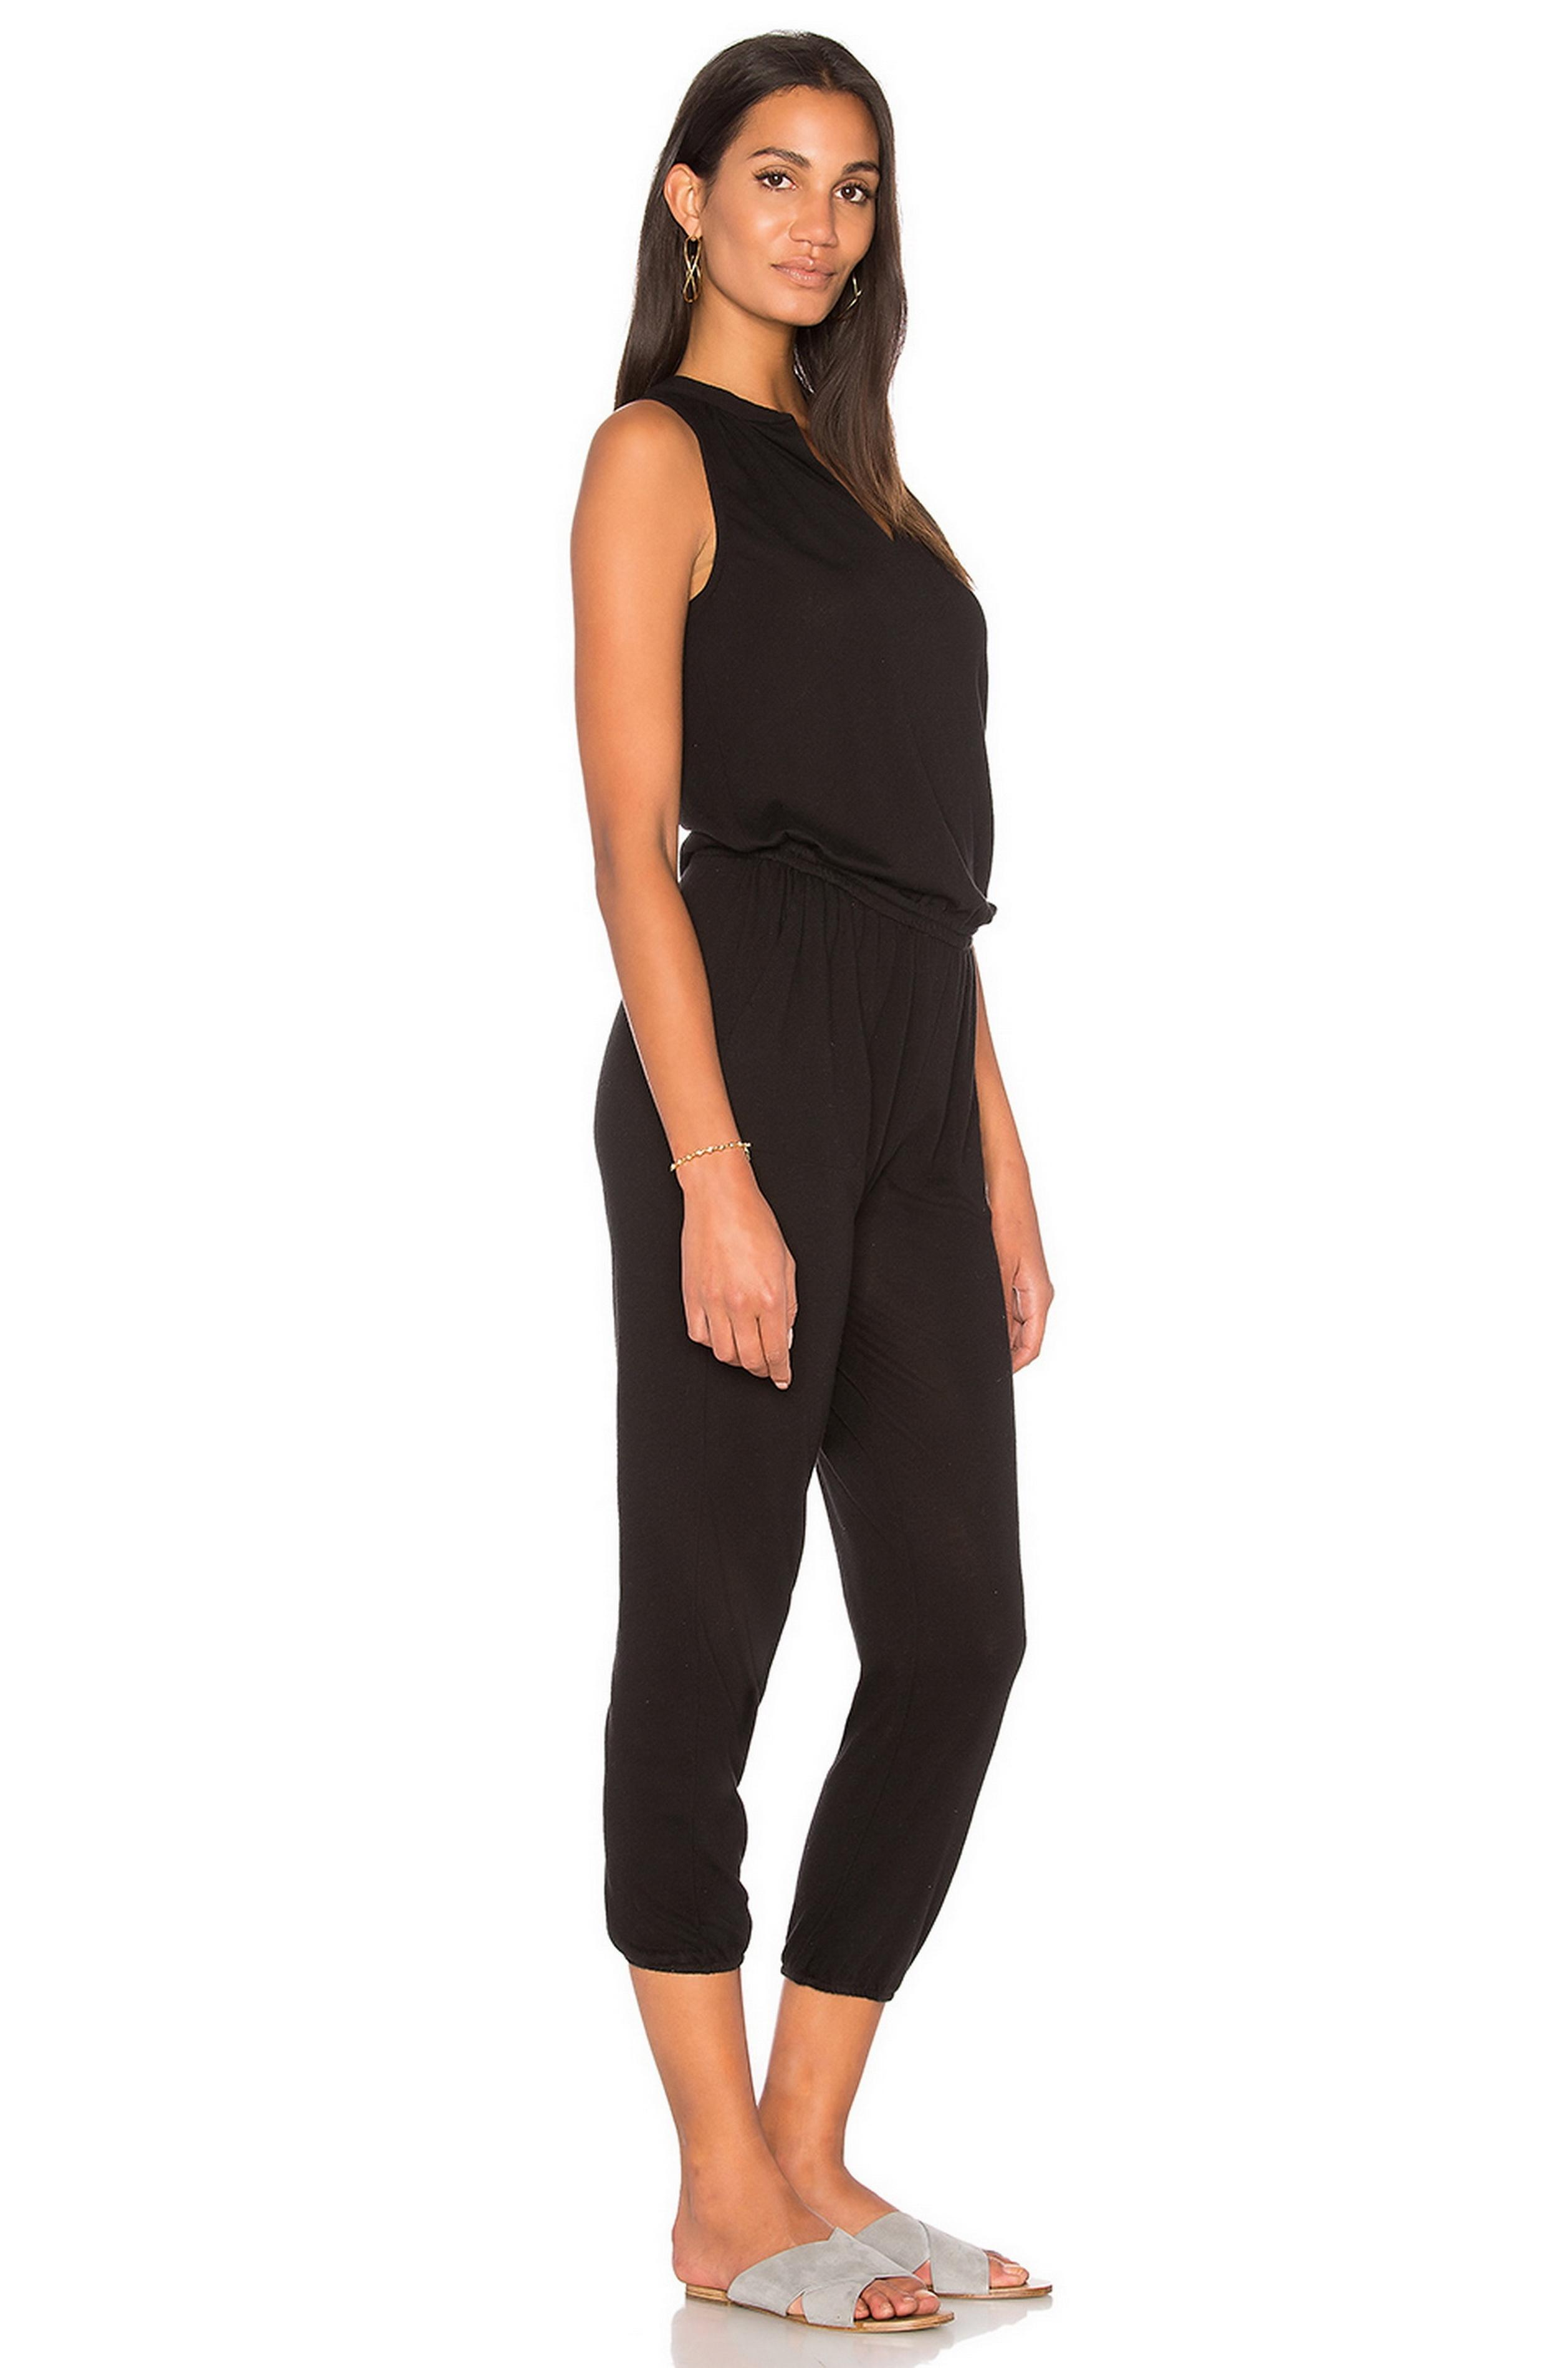 You searched for: size 8 jumpsuit! Etsy is the home to thousands of handmade, vintage, and one-of-a-kind products and gifts related to your search. No matter what you're looking for or where you are in the world, our global marketplace of sellers can help you find unique and affordable options.